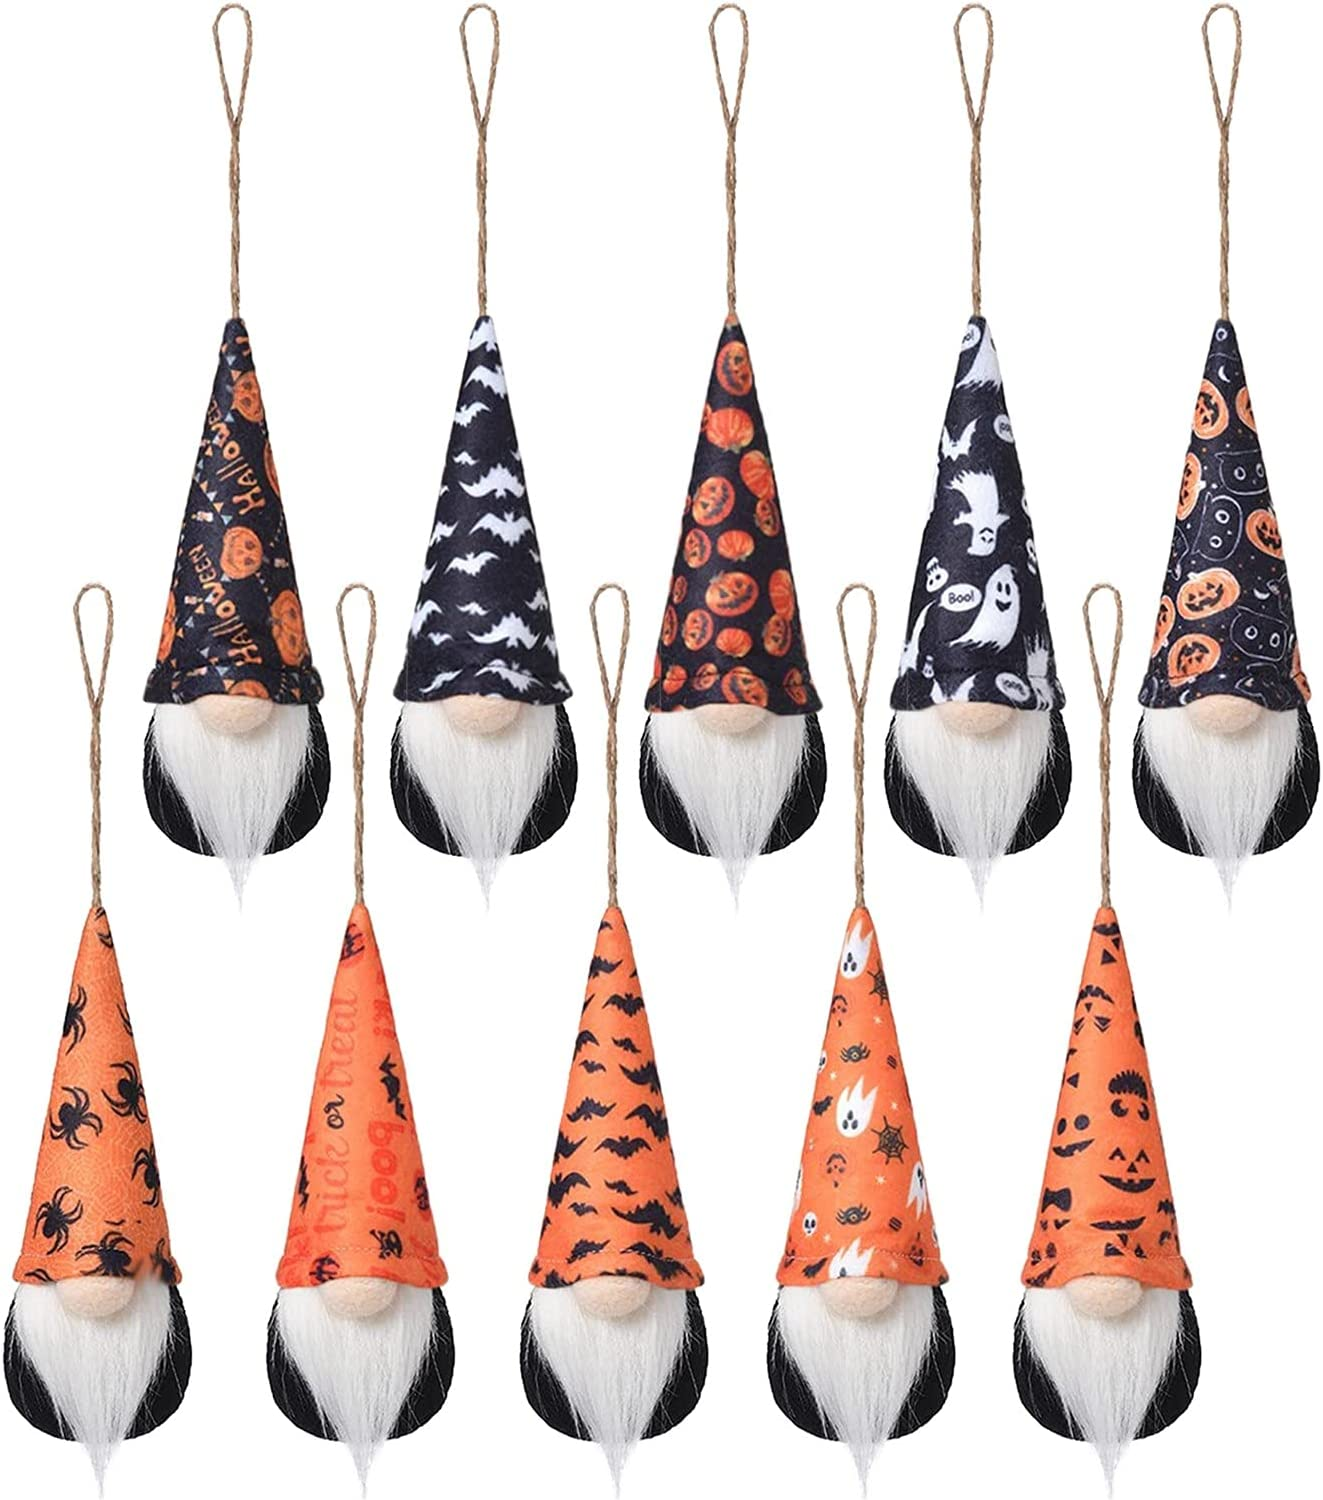 fvbhty Max 43% OFF 10PCS Halloween Faceless Gnome Overseas parallel import regular item Ornaments Cute Doll Easter